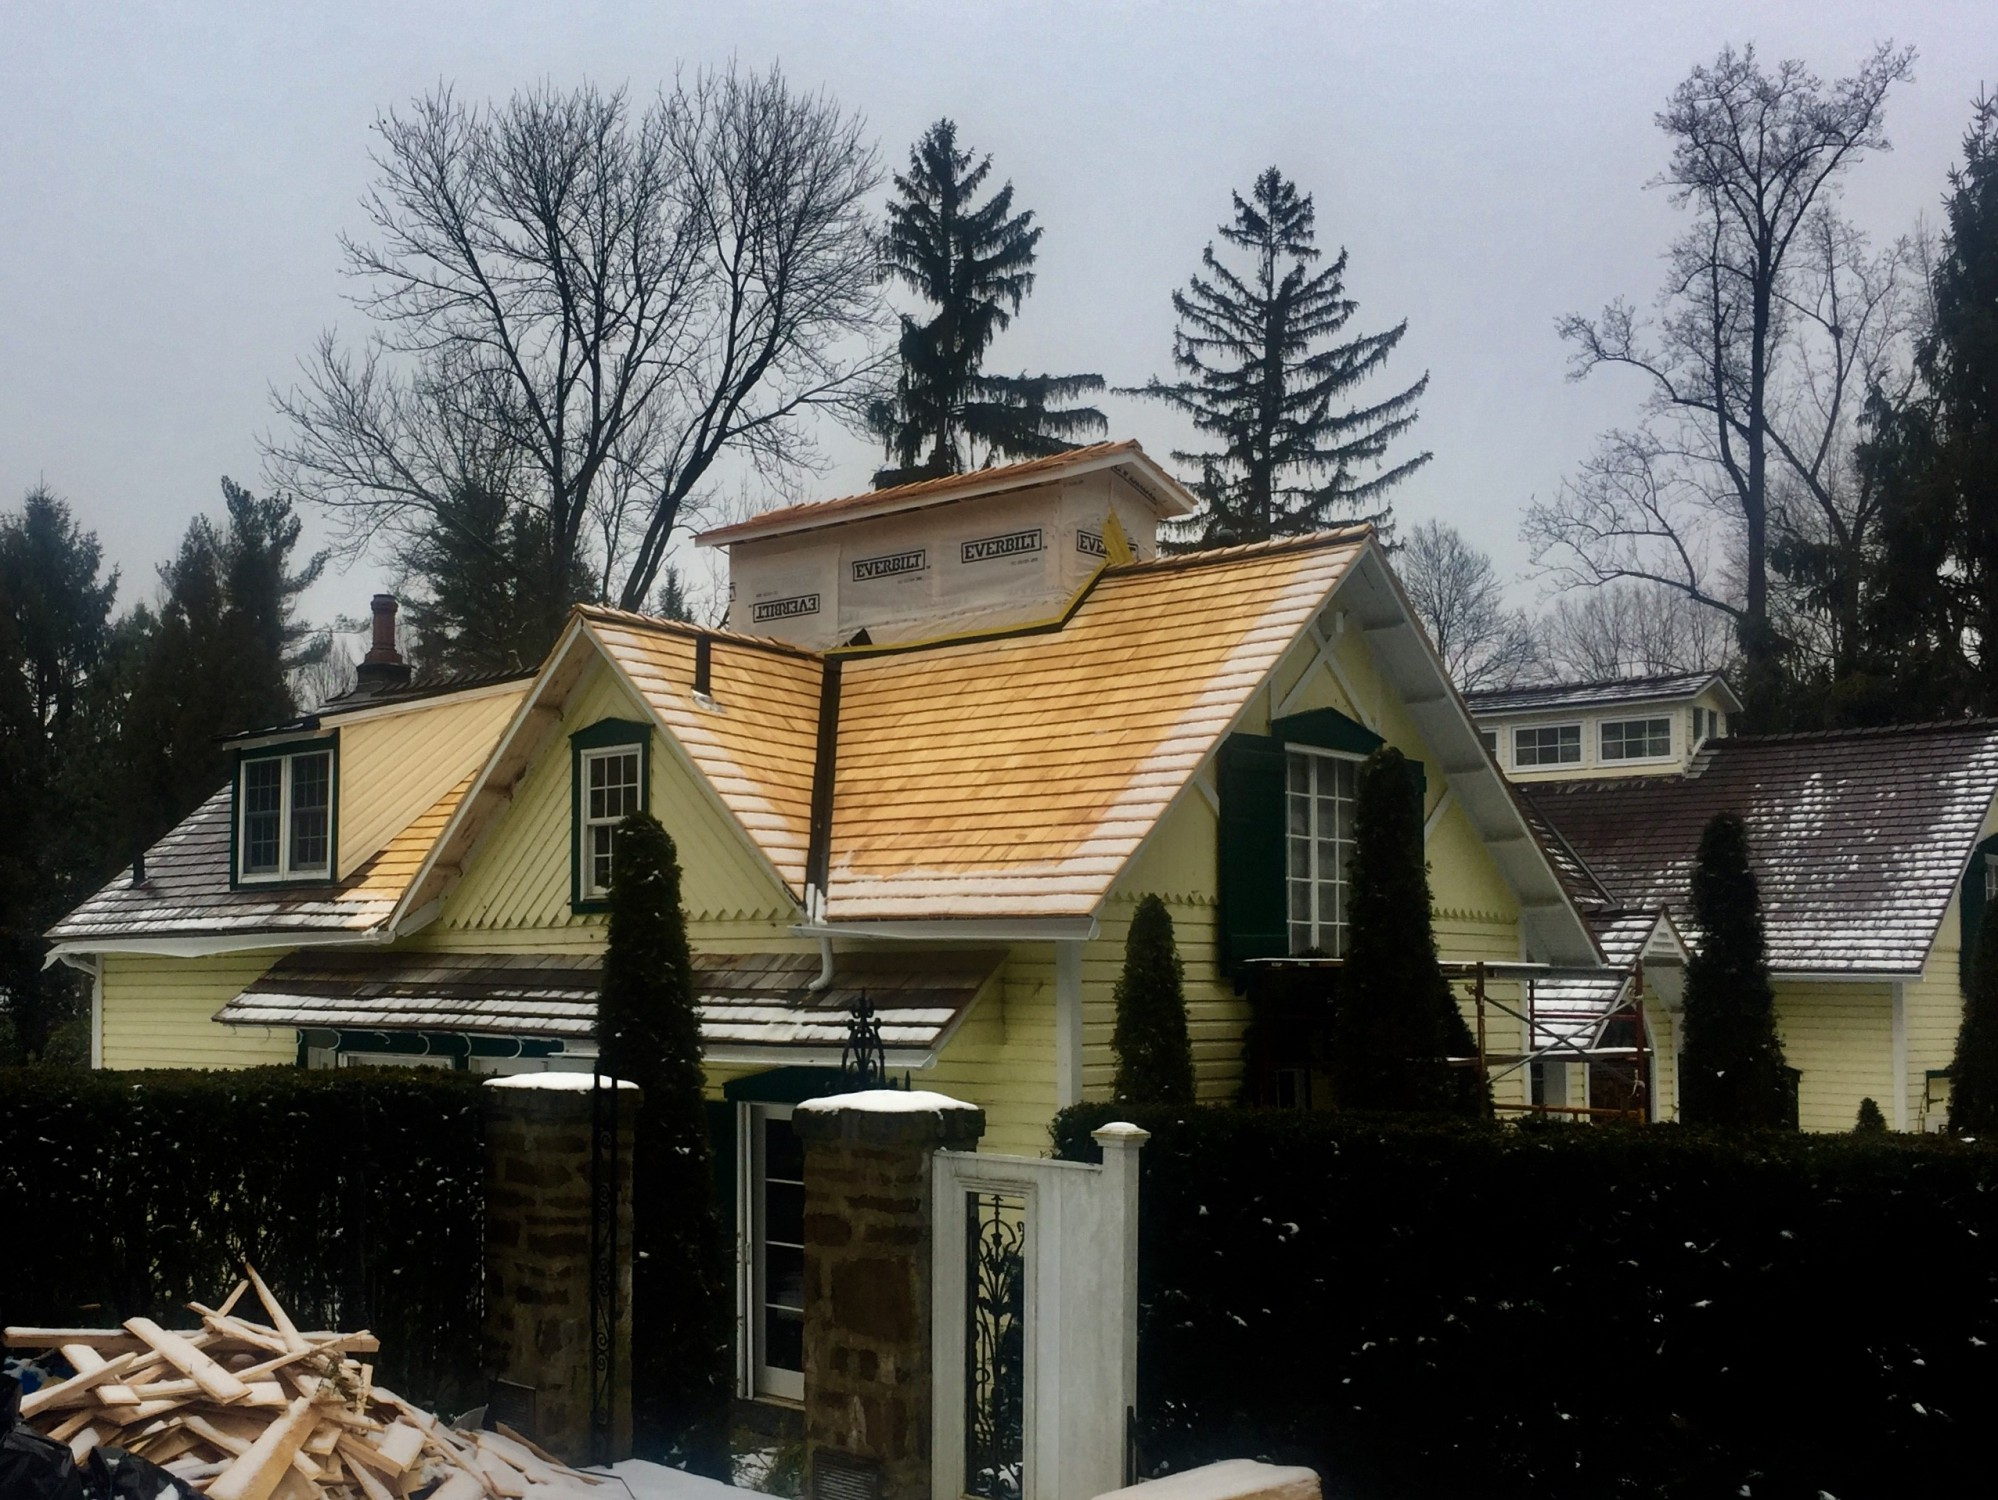 Restoration of early 1800s home in Haverford, PA following extensive tree damage from 2018 storm. Architect: Wyant Architecture